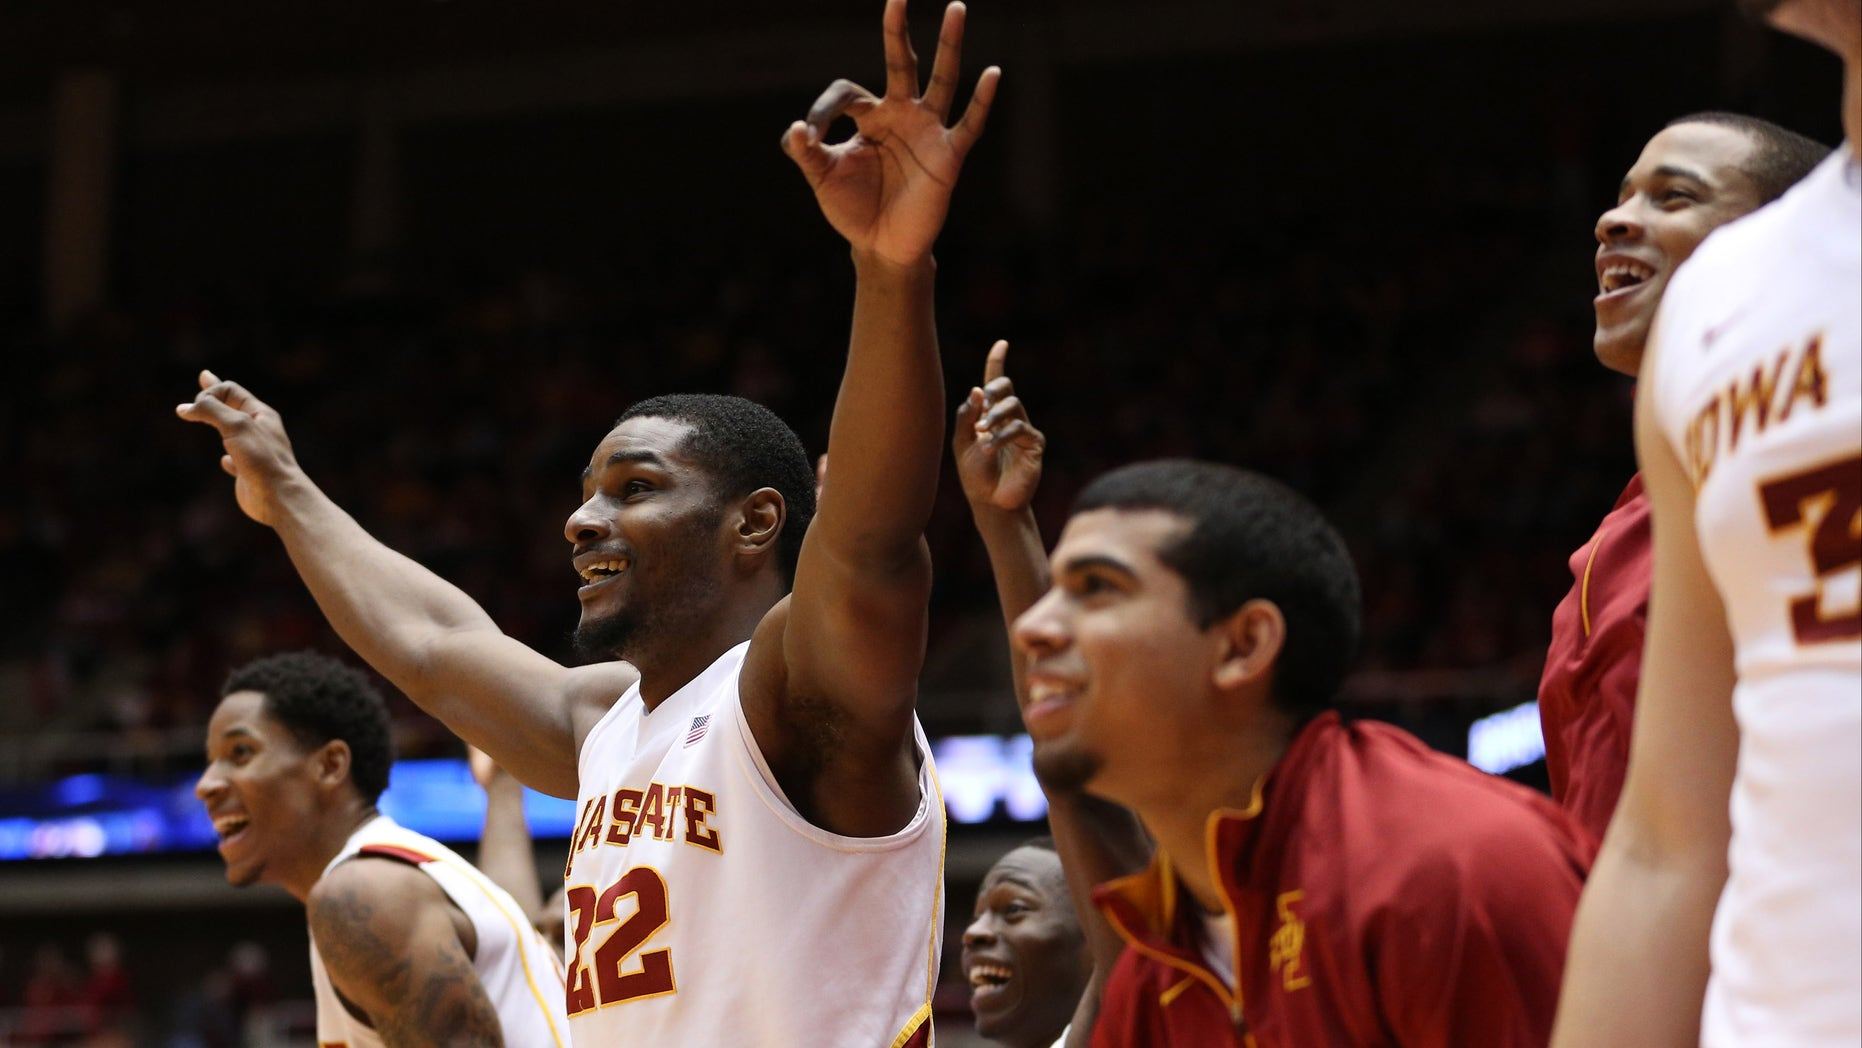 Iowa State forward Anthony Booker (22) and the rest of the Iowa State bench celebrate as Iowa State guard Nkereuwem Okoro (not shown) hits a three-pointer late in the second half of their NCAA college basketball game against TCU Saturday, Feb. 16, 2013, at Hilton Coliseum in Ames, Iowa. Iowa State won the game 87-53. (AP Photo/Justin Hayworth)